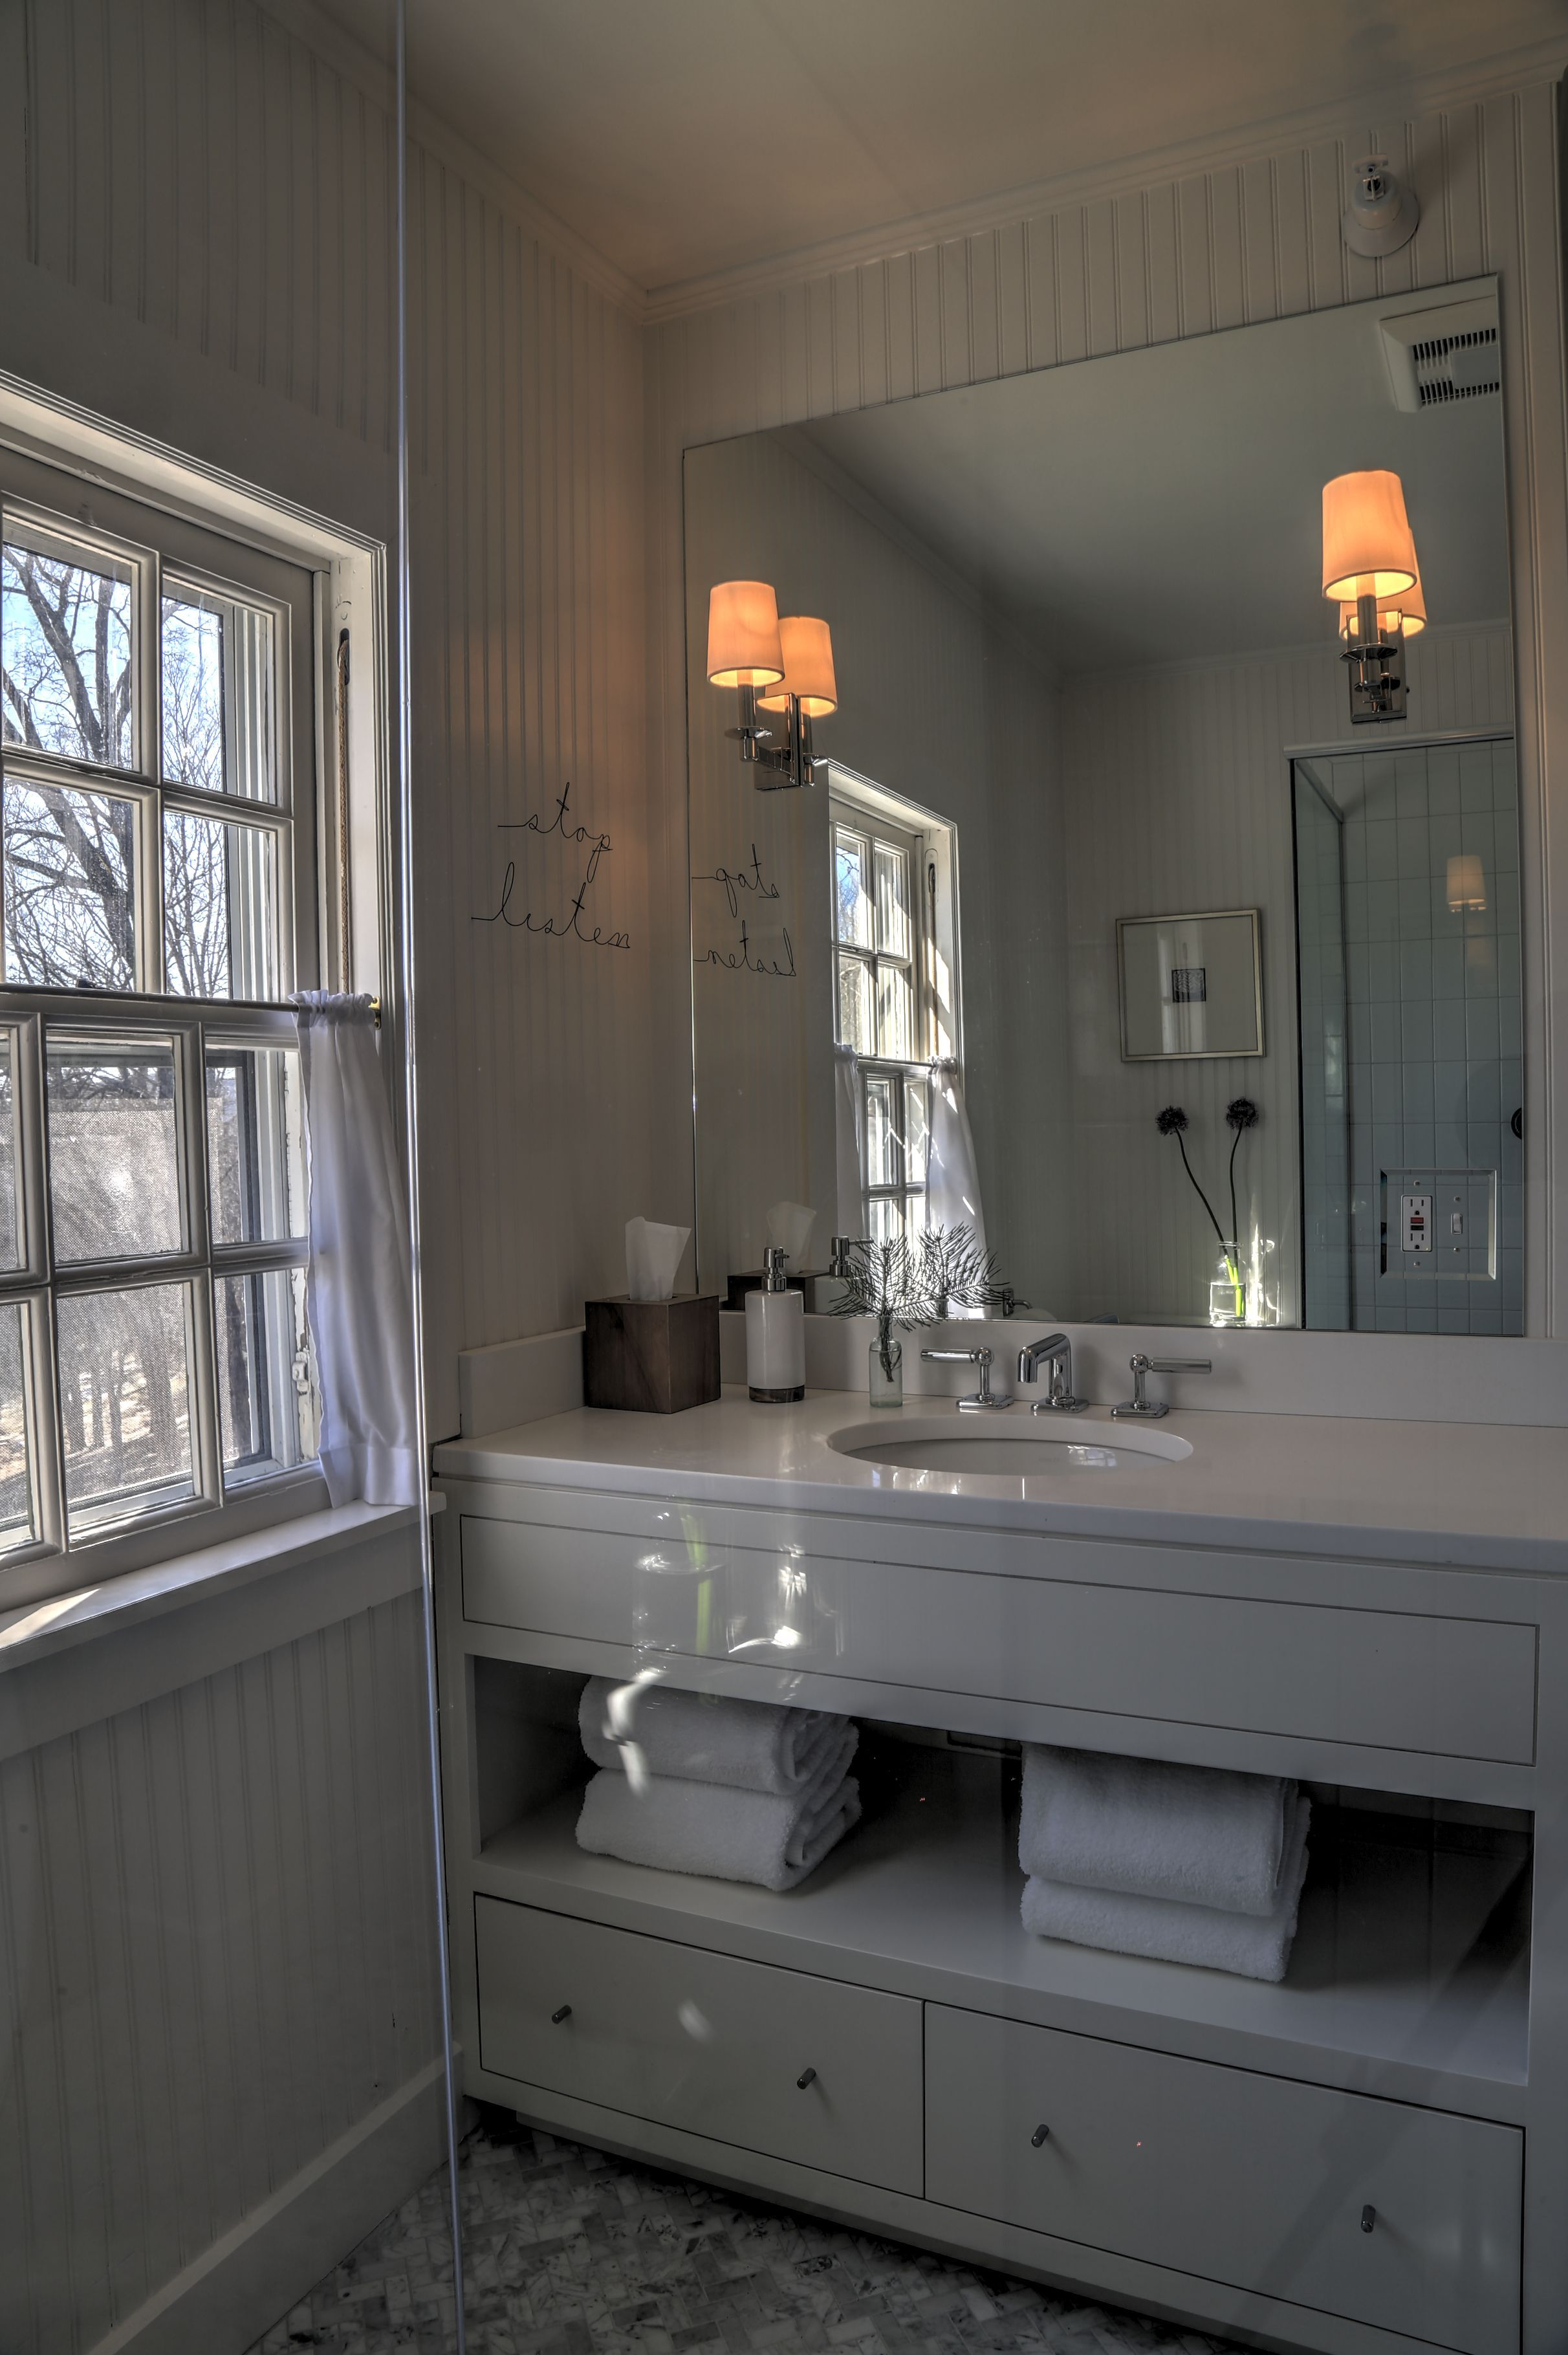 Manor Room Bathroom House rooms, Luxurious rooms, New homes